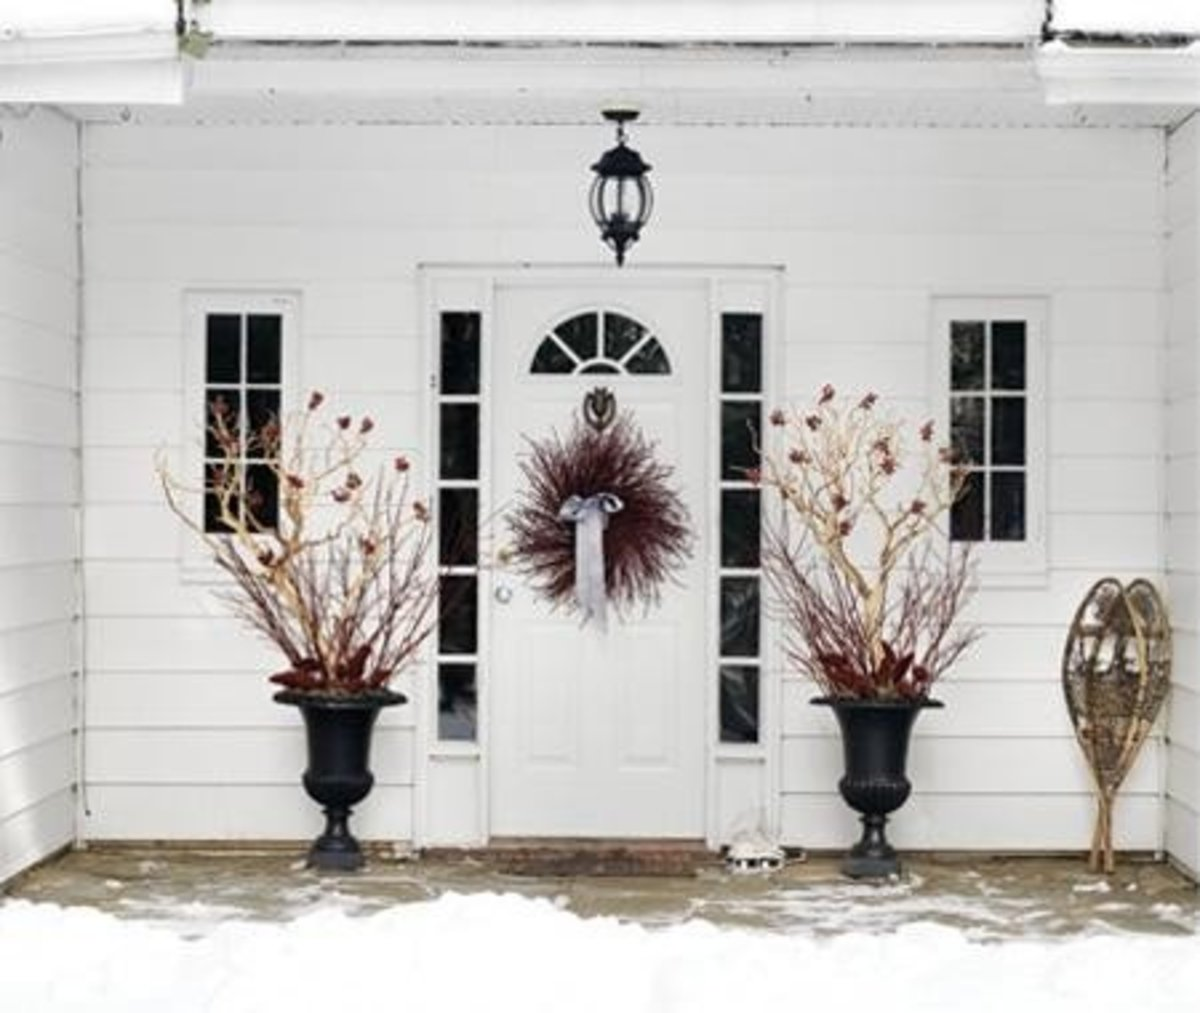 Classic Exterior Easter Decorations providing an elegant touch